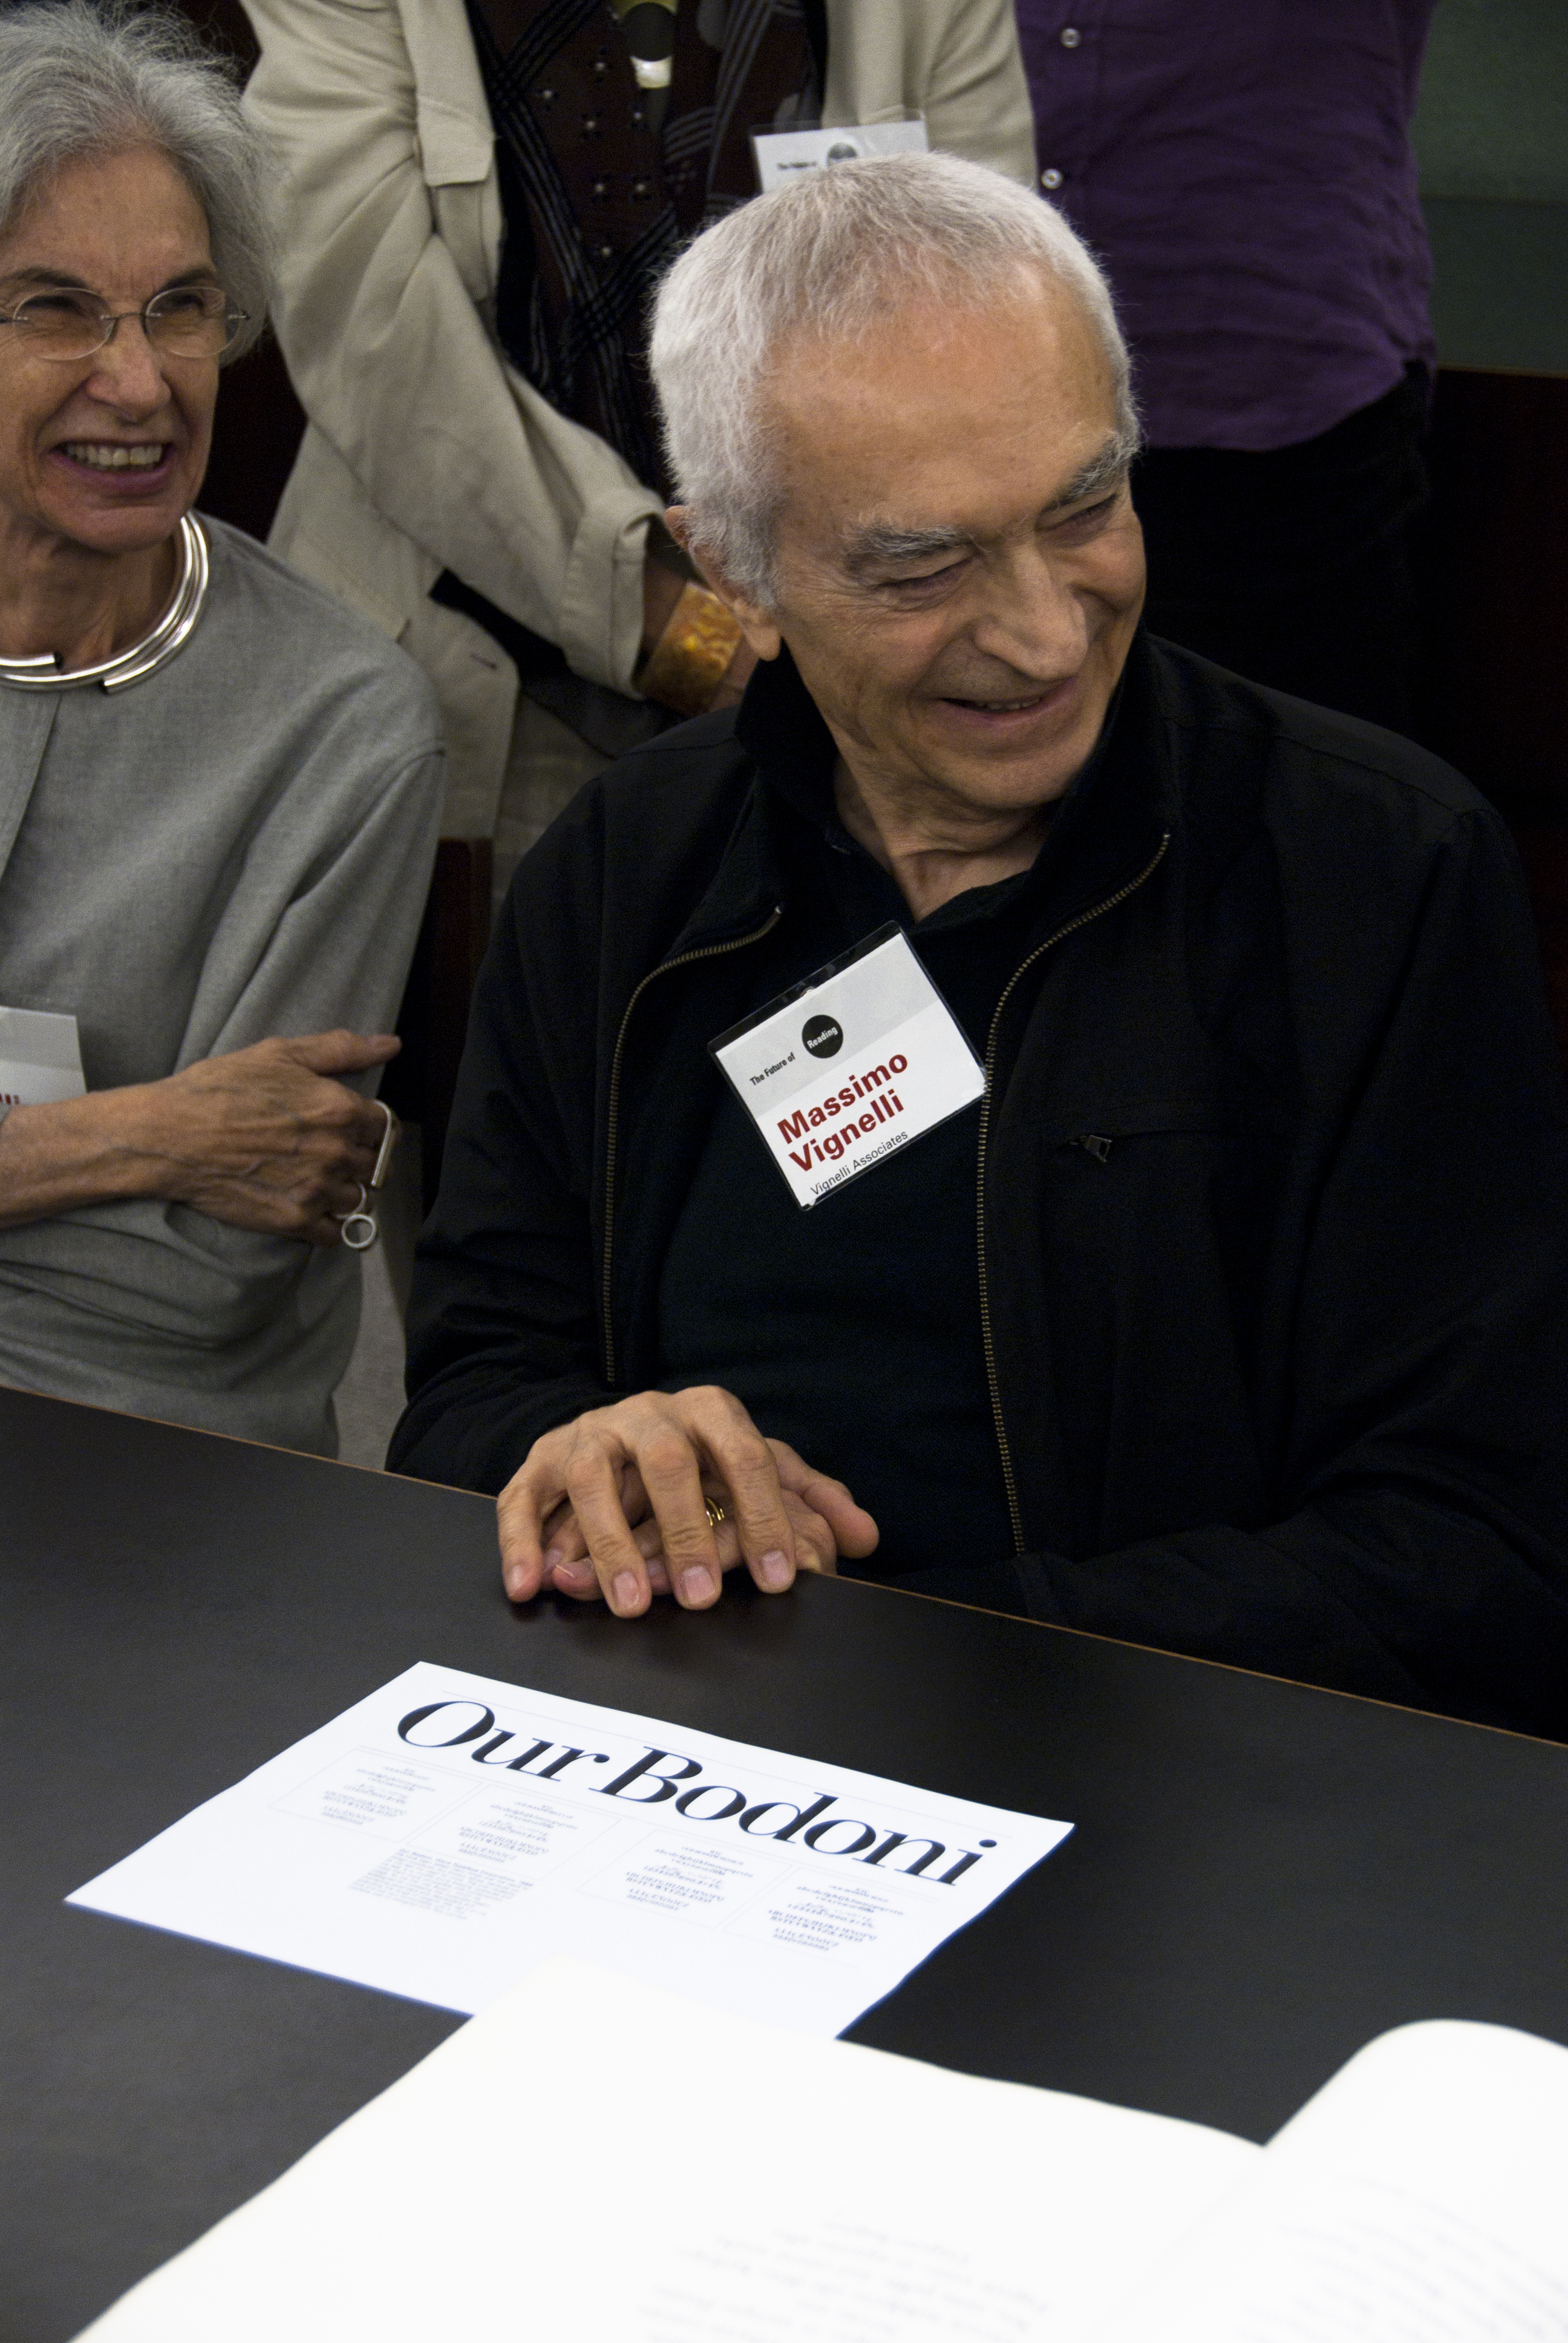 Massimo Vignelli and Lella at the [[RIT]] Cary Graphic Arts Collection with a specimen of his typeface, Our Bodoni.